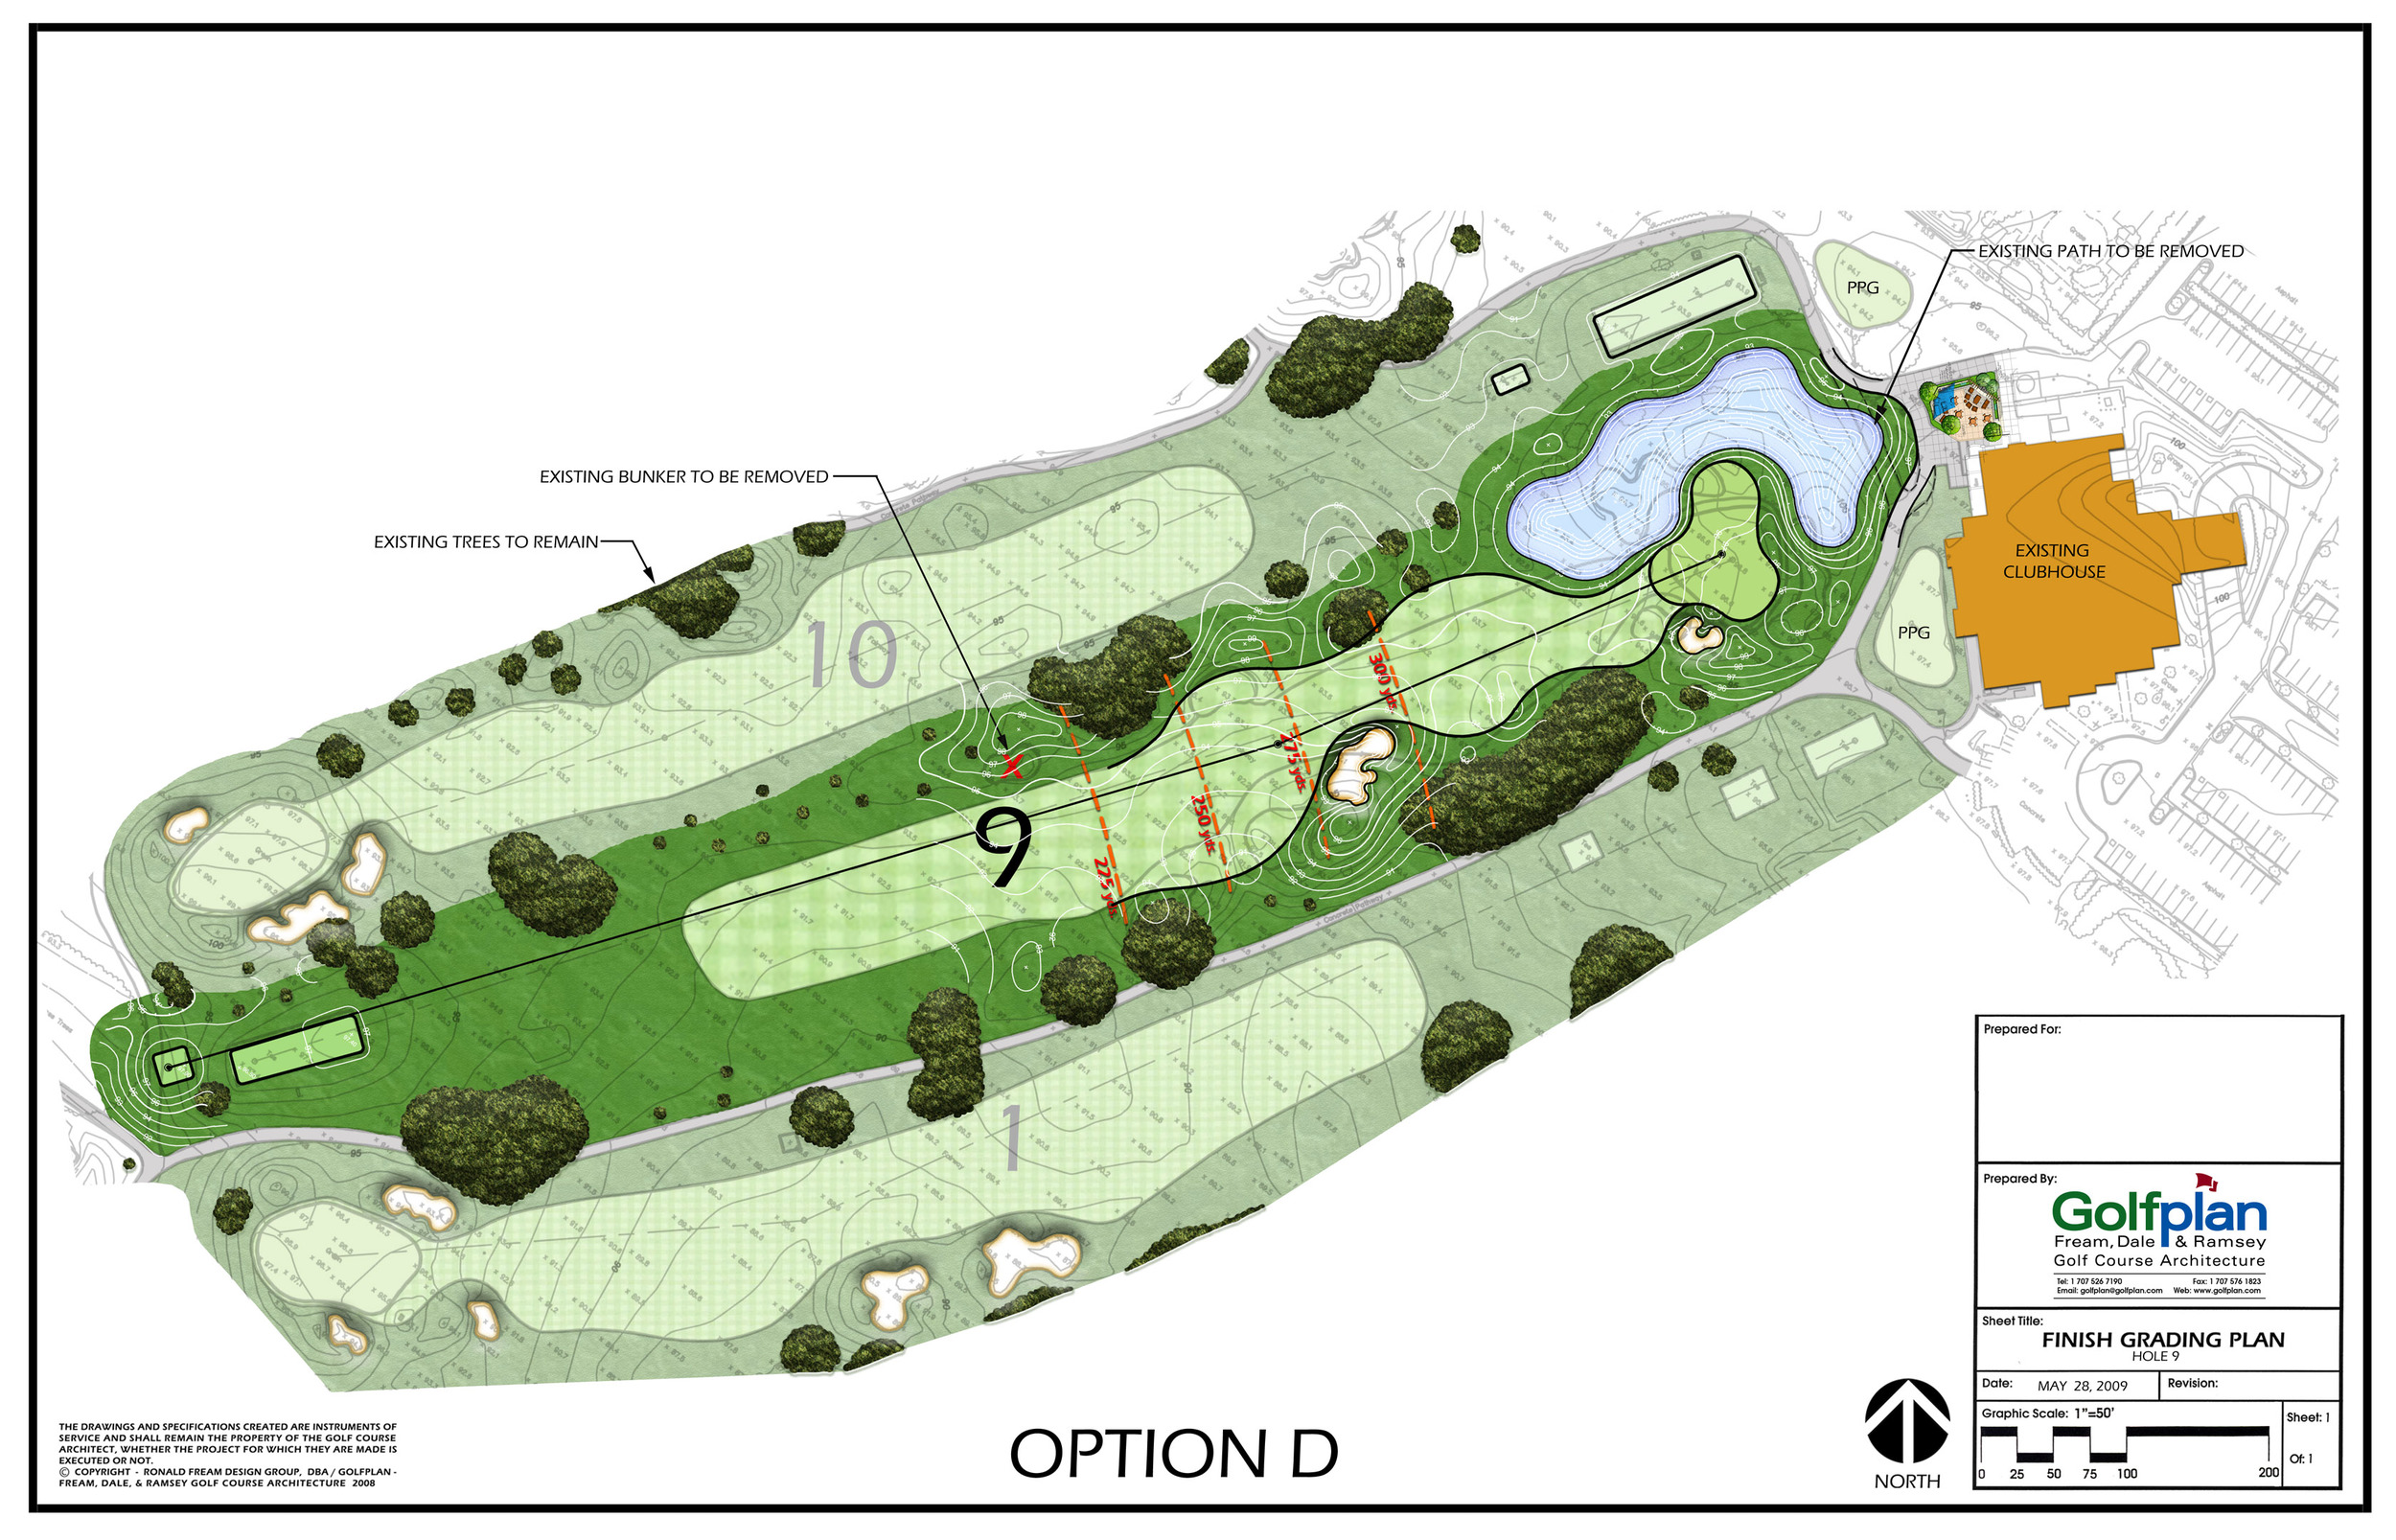 Golf Hole Remodeling Plan